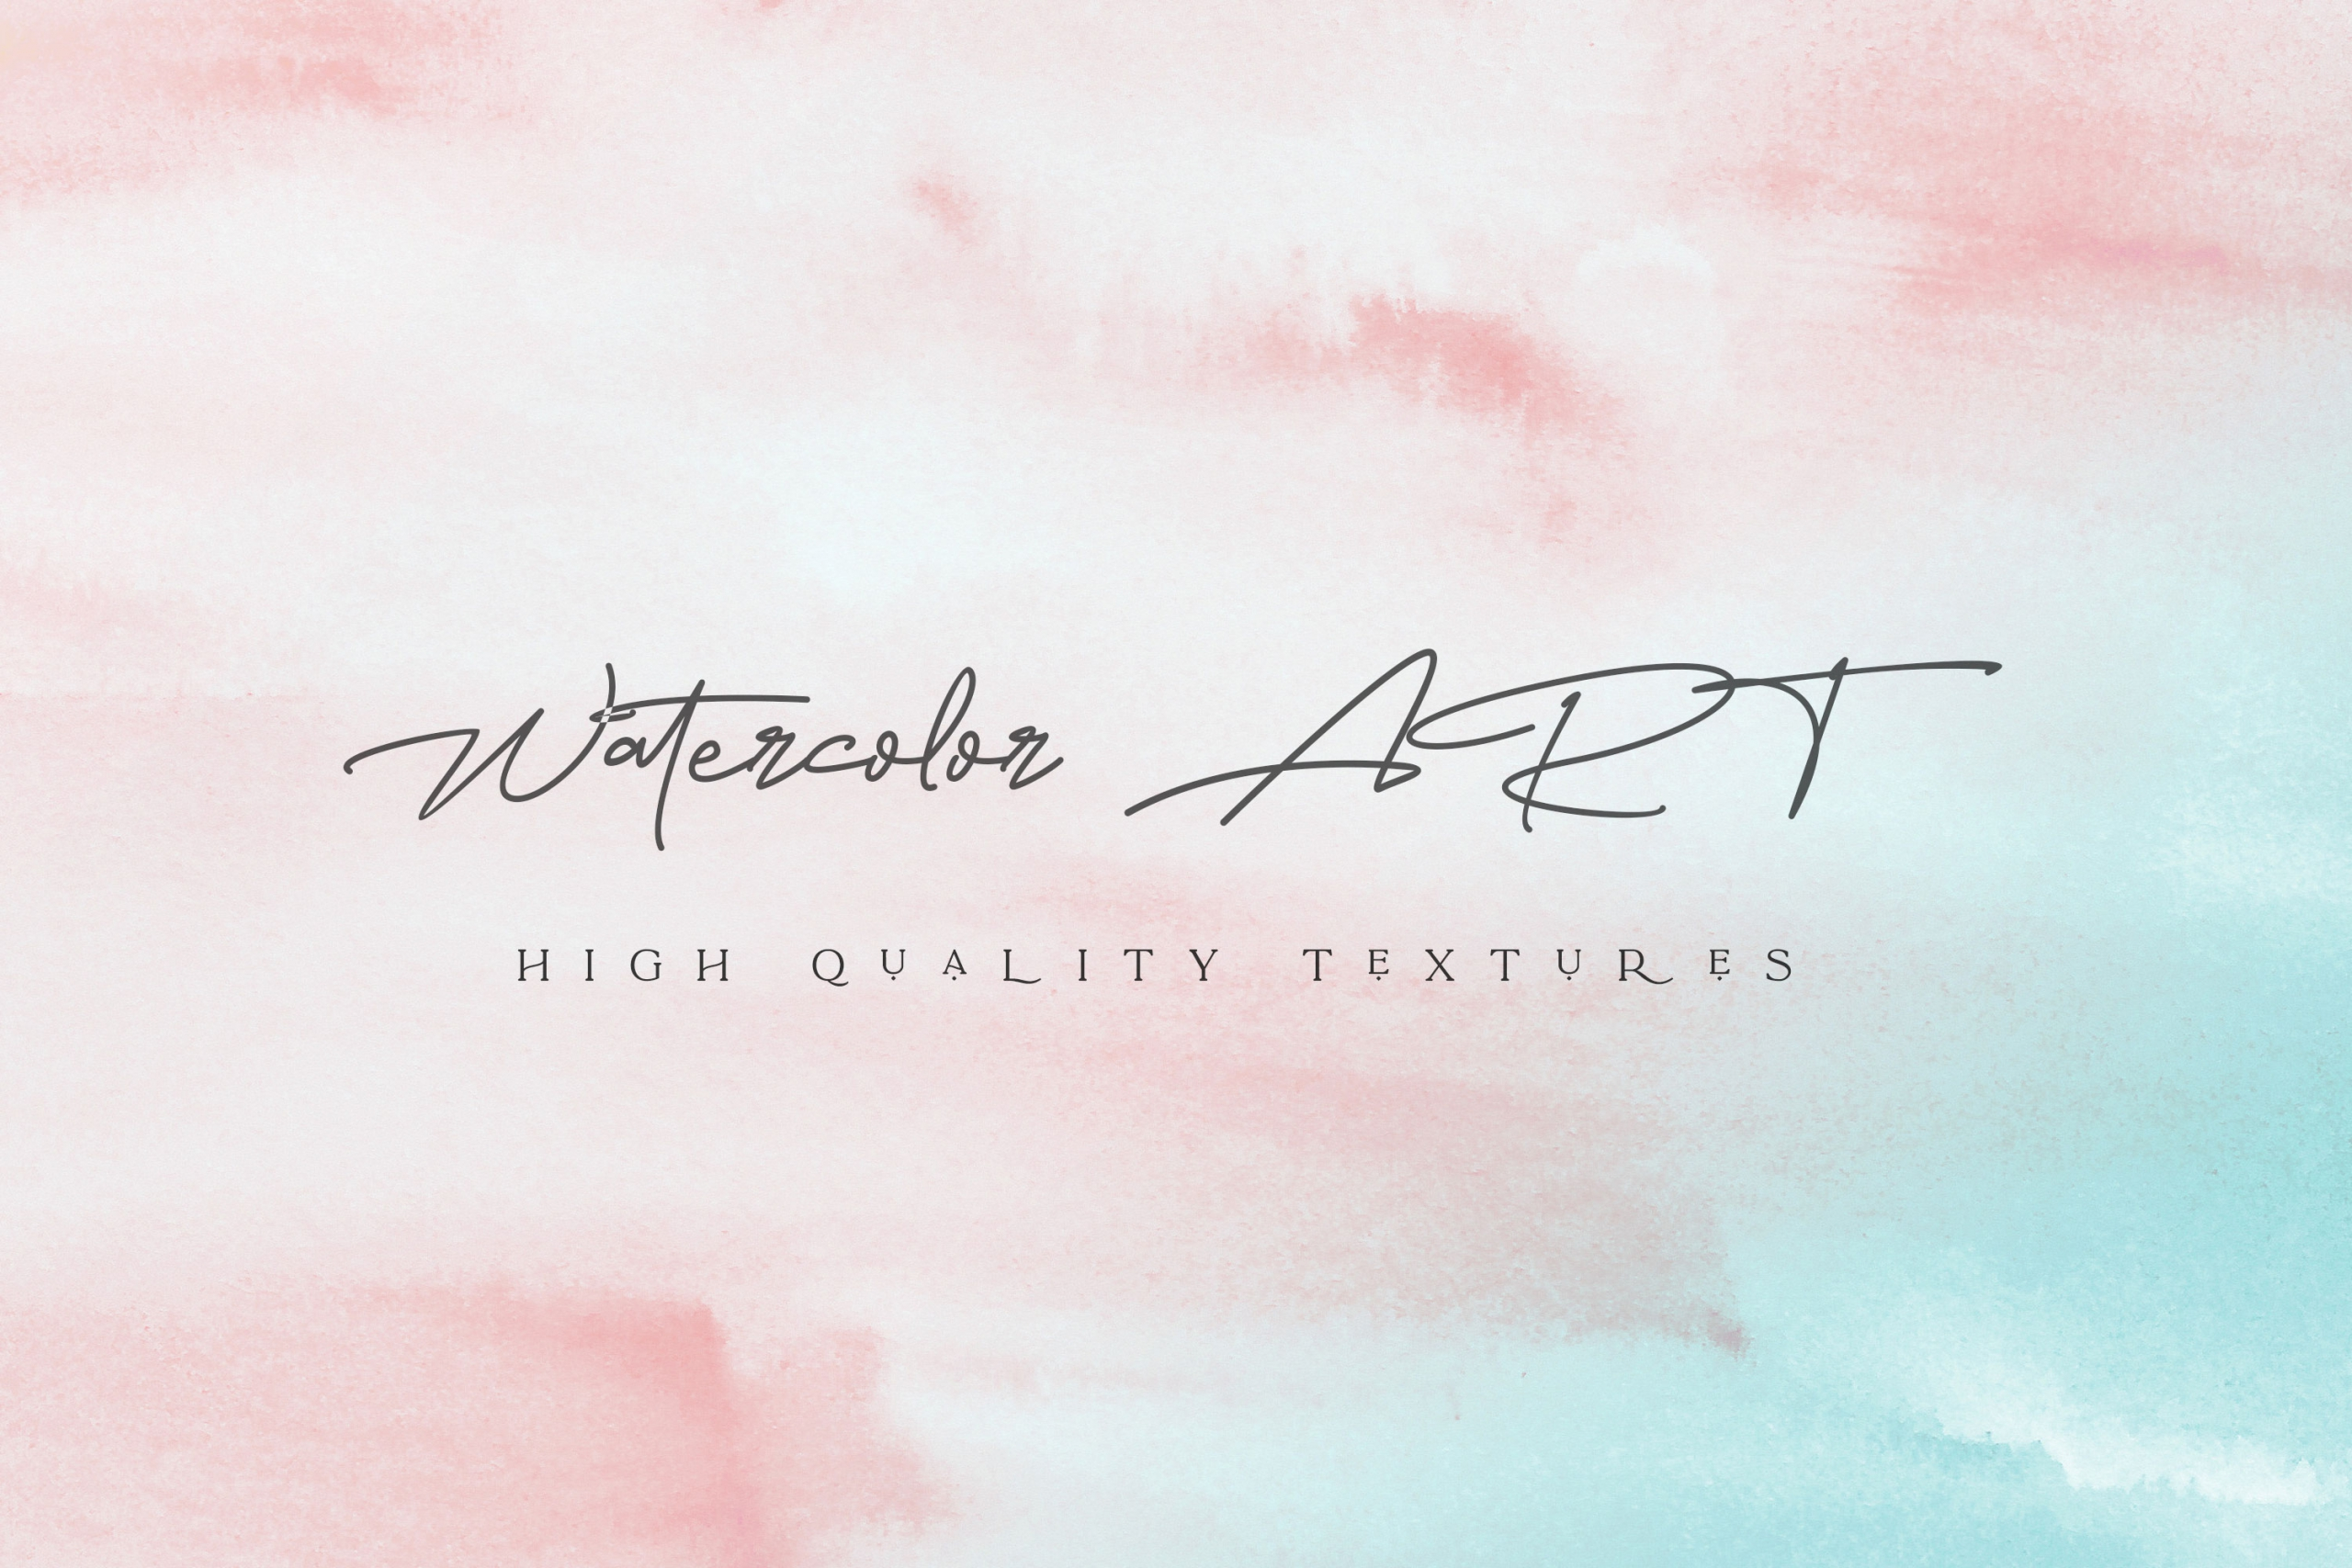 Pink & Turquoise Watercolor Background